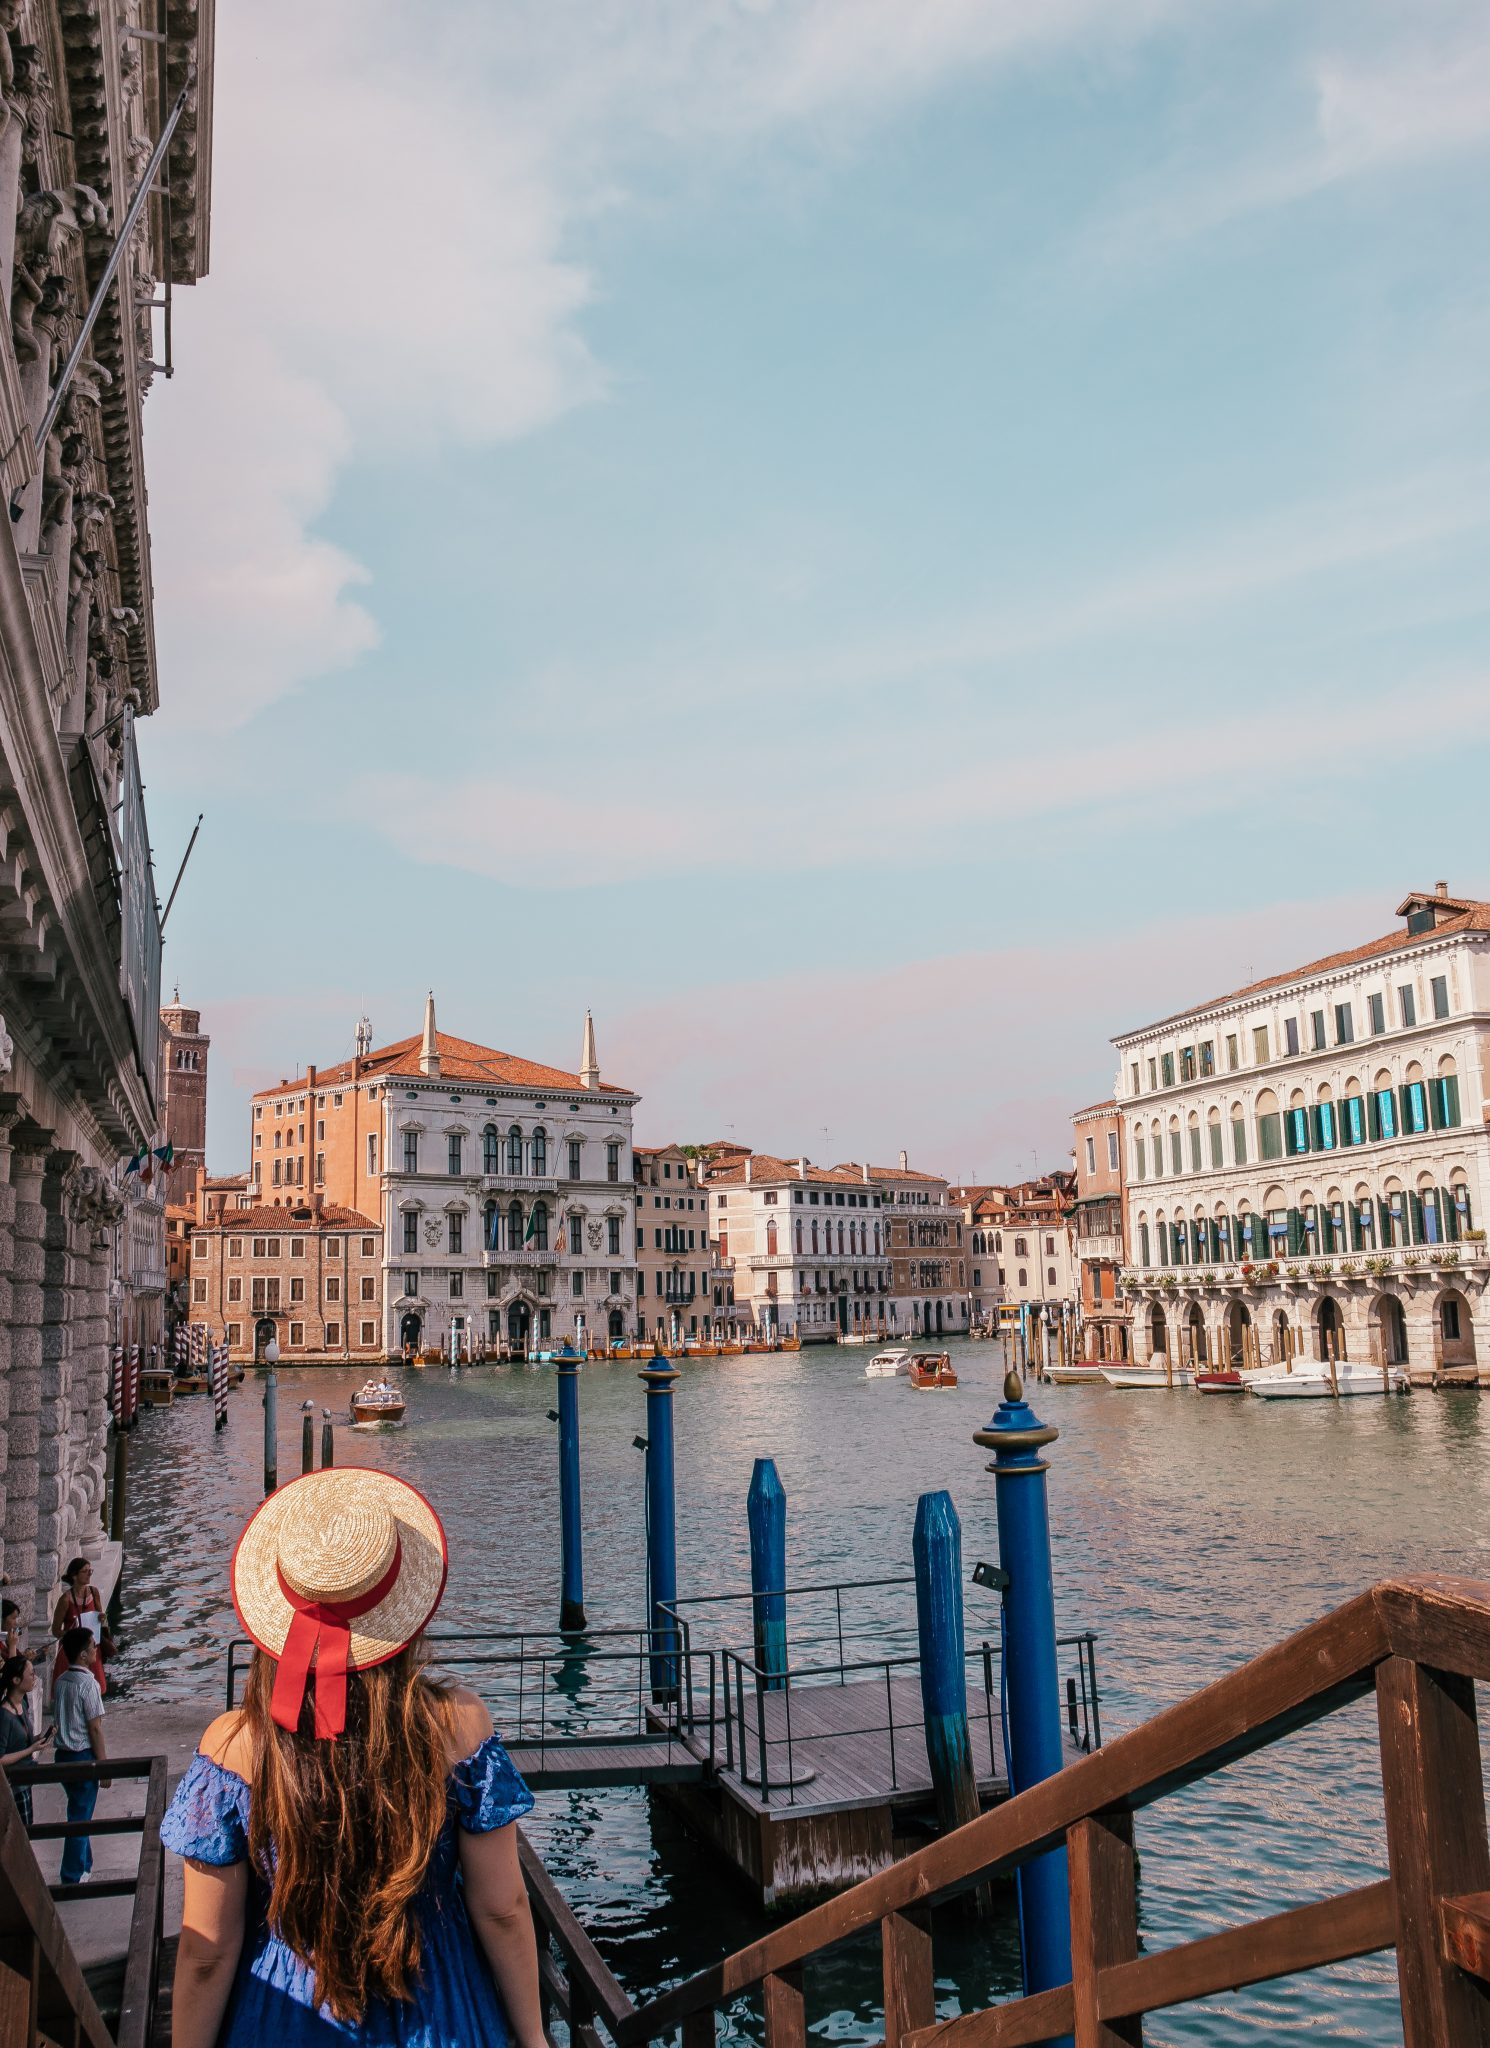 Most Instagrammable Places In Venice - Grand Canal